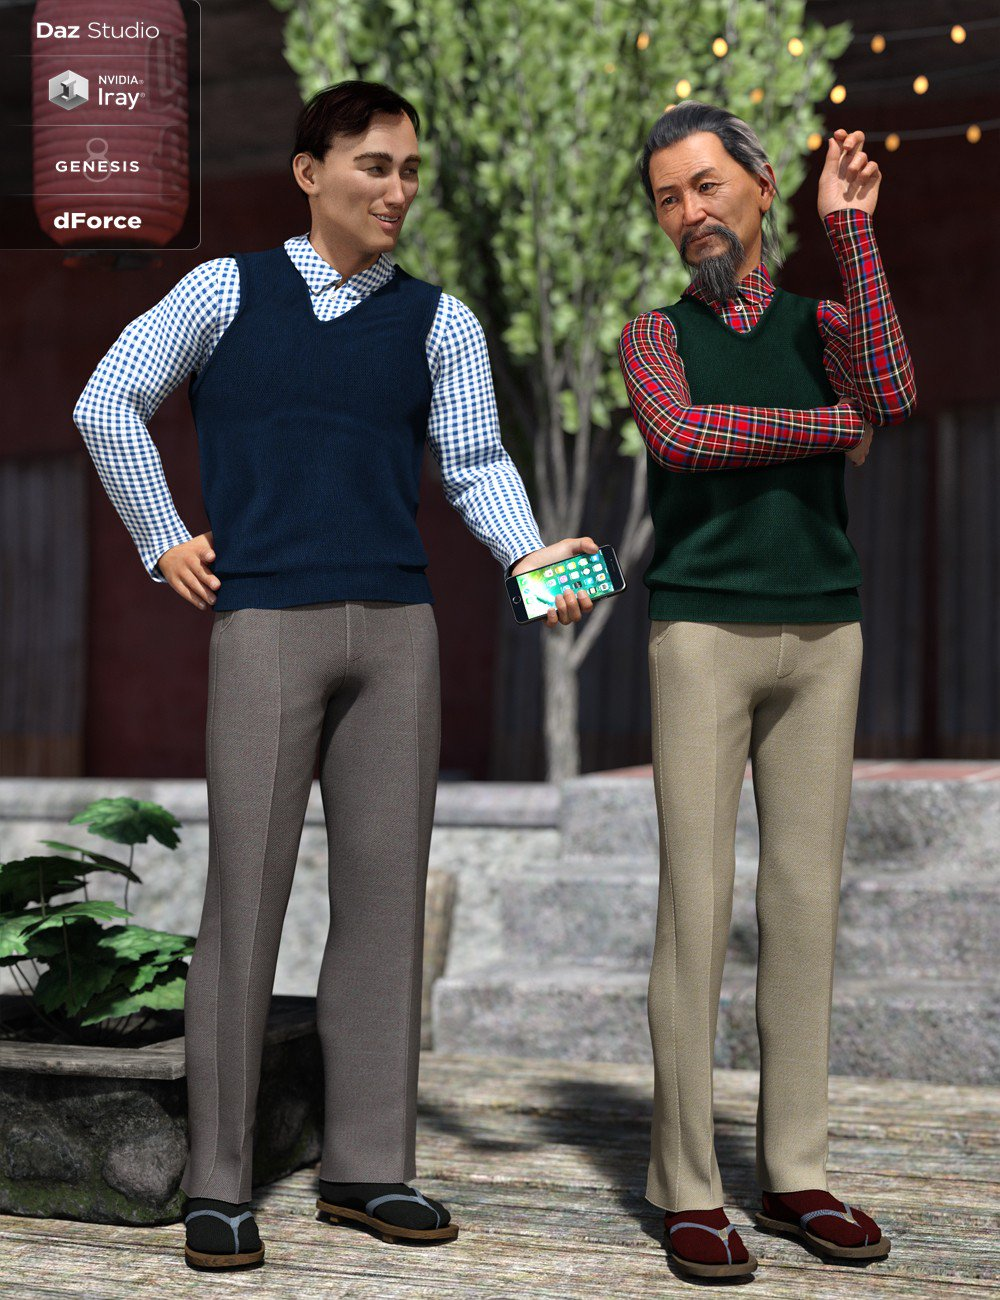 Sweater Vest Outfit Textures (Genesis 8 Male)